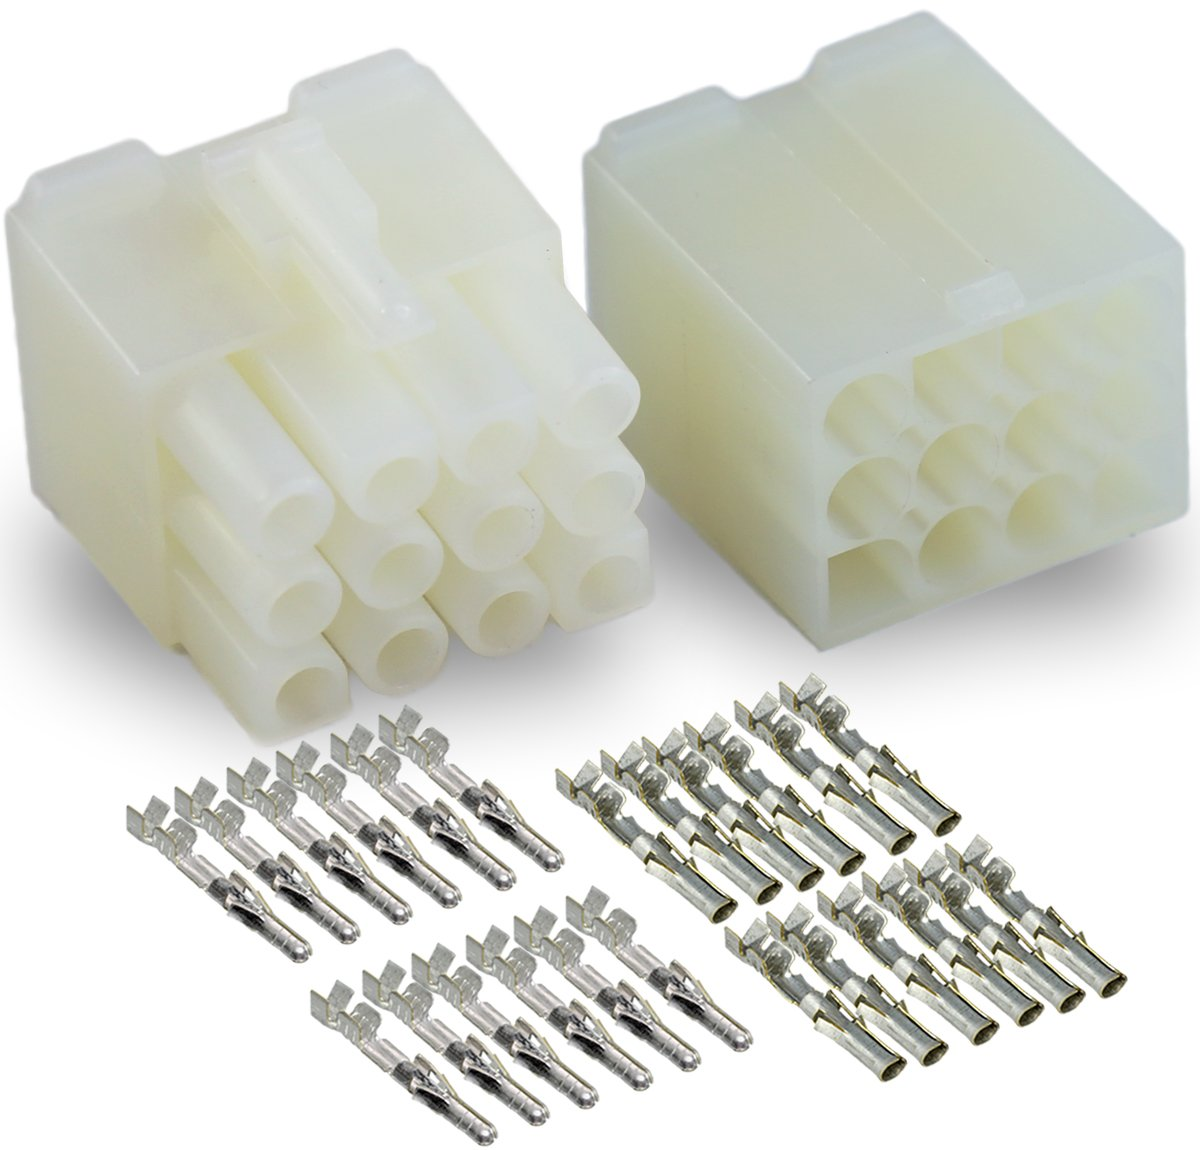 """1 Kit 12 Pin Way Circuit Male Female Connector For Molex 0.093/"""" .093/"""" Pins Plug"""